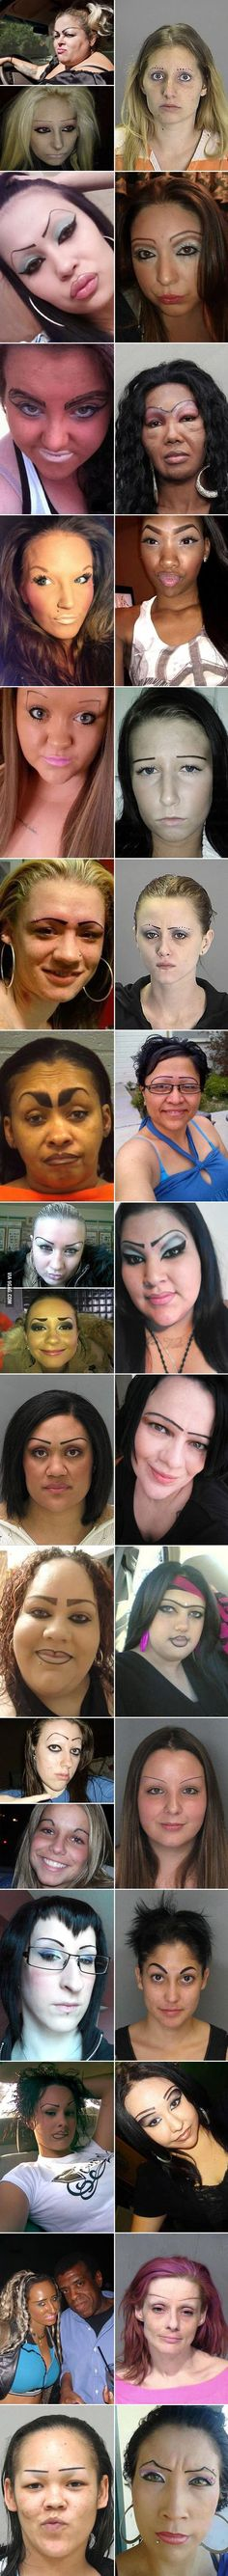 "33 Women Who Don't Understand Eyebrows. ""That's it. Enough internet for today"" -lol!!"